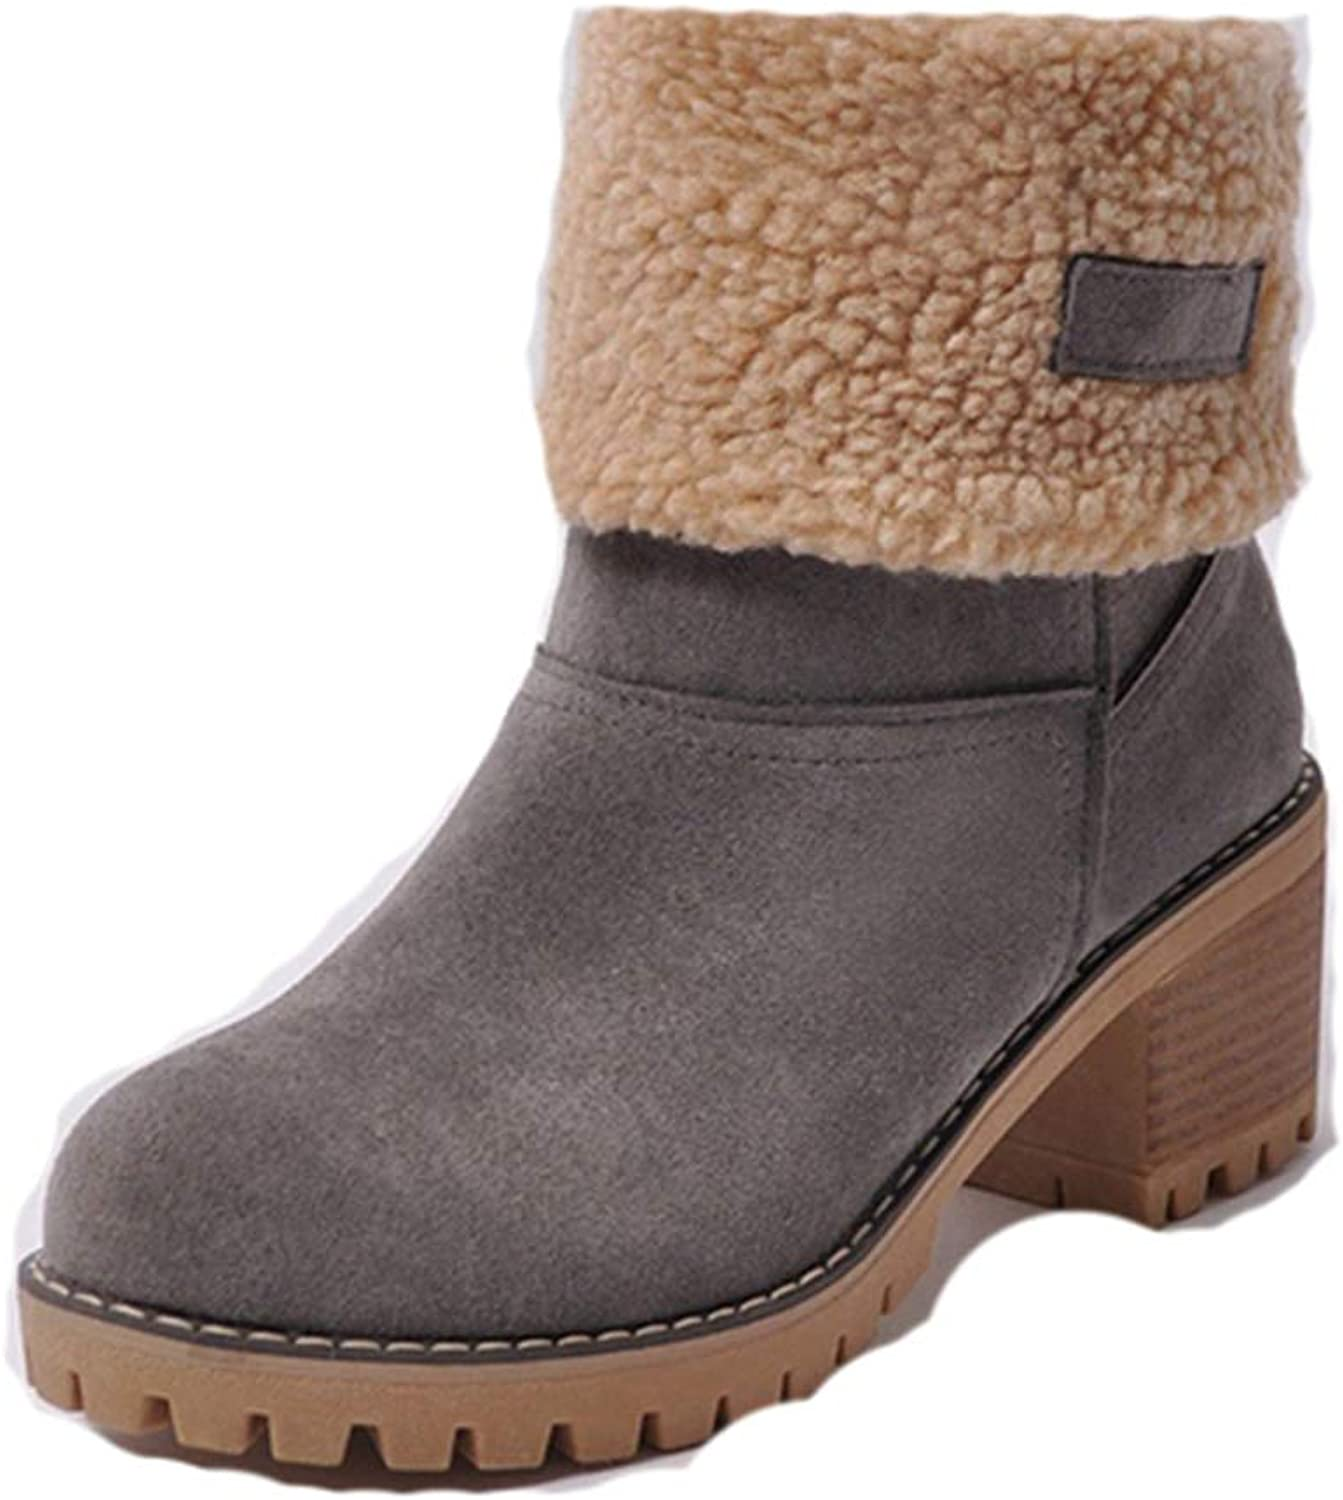 Female Winter shoes Woman Fur Warm Snow Boots Fashion Square High Heels Ankle Boots Black Green Botas women